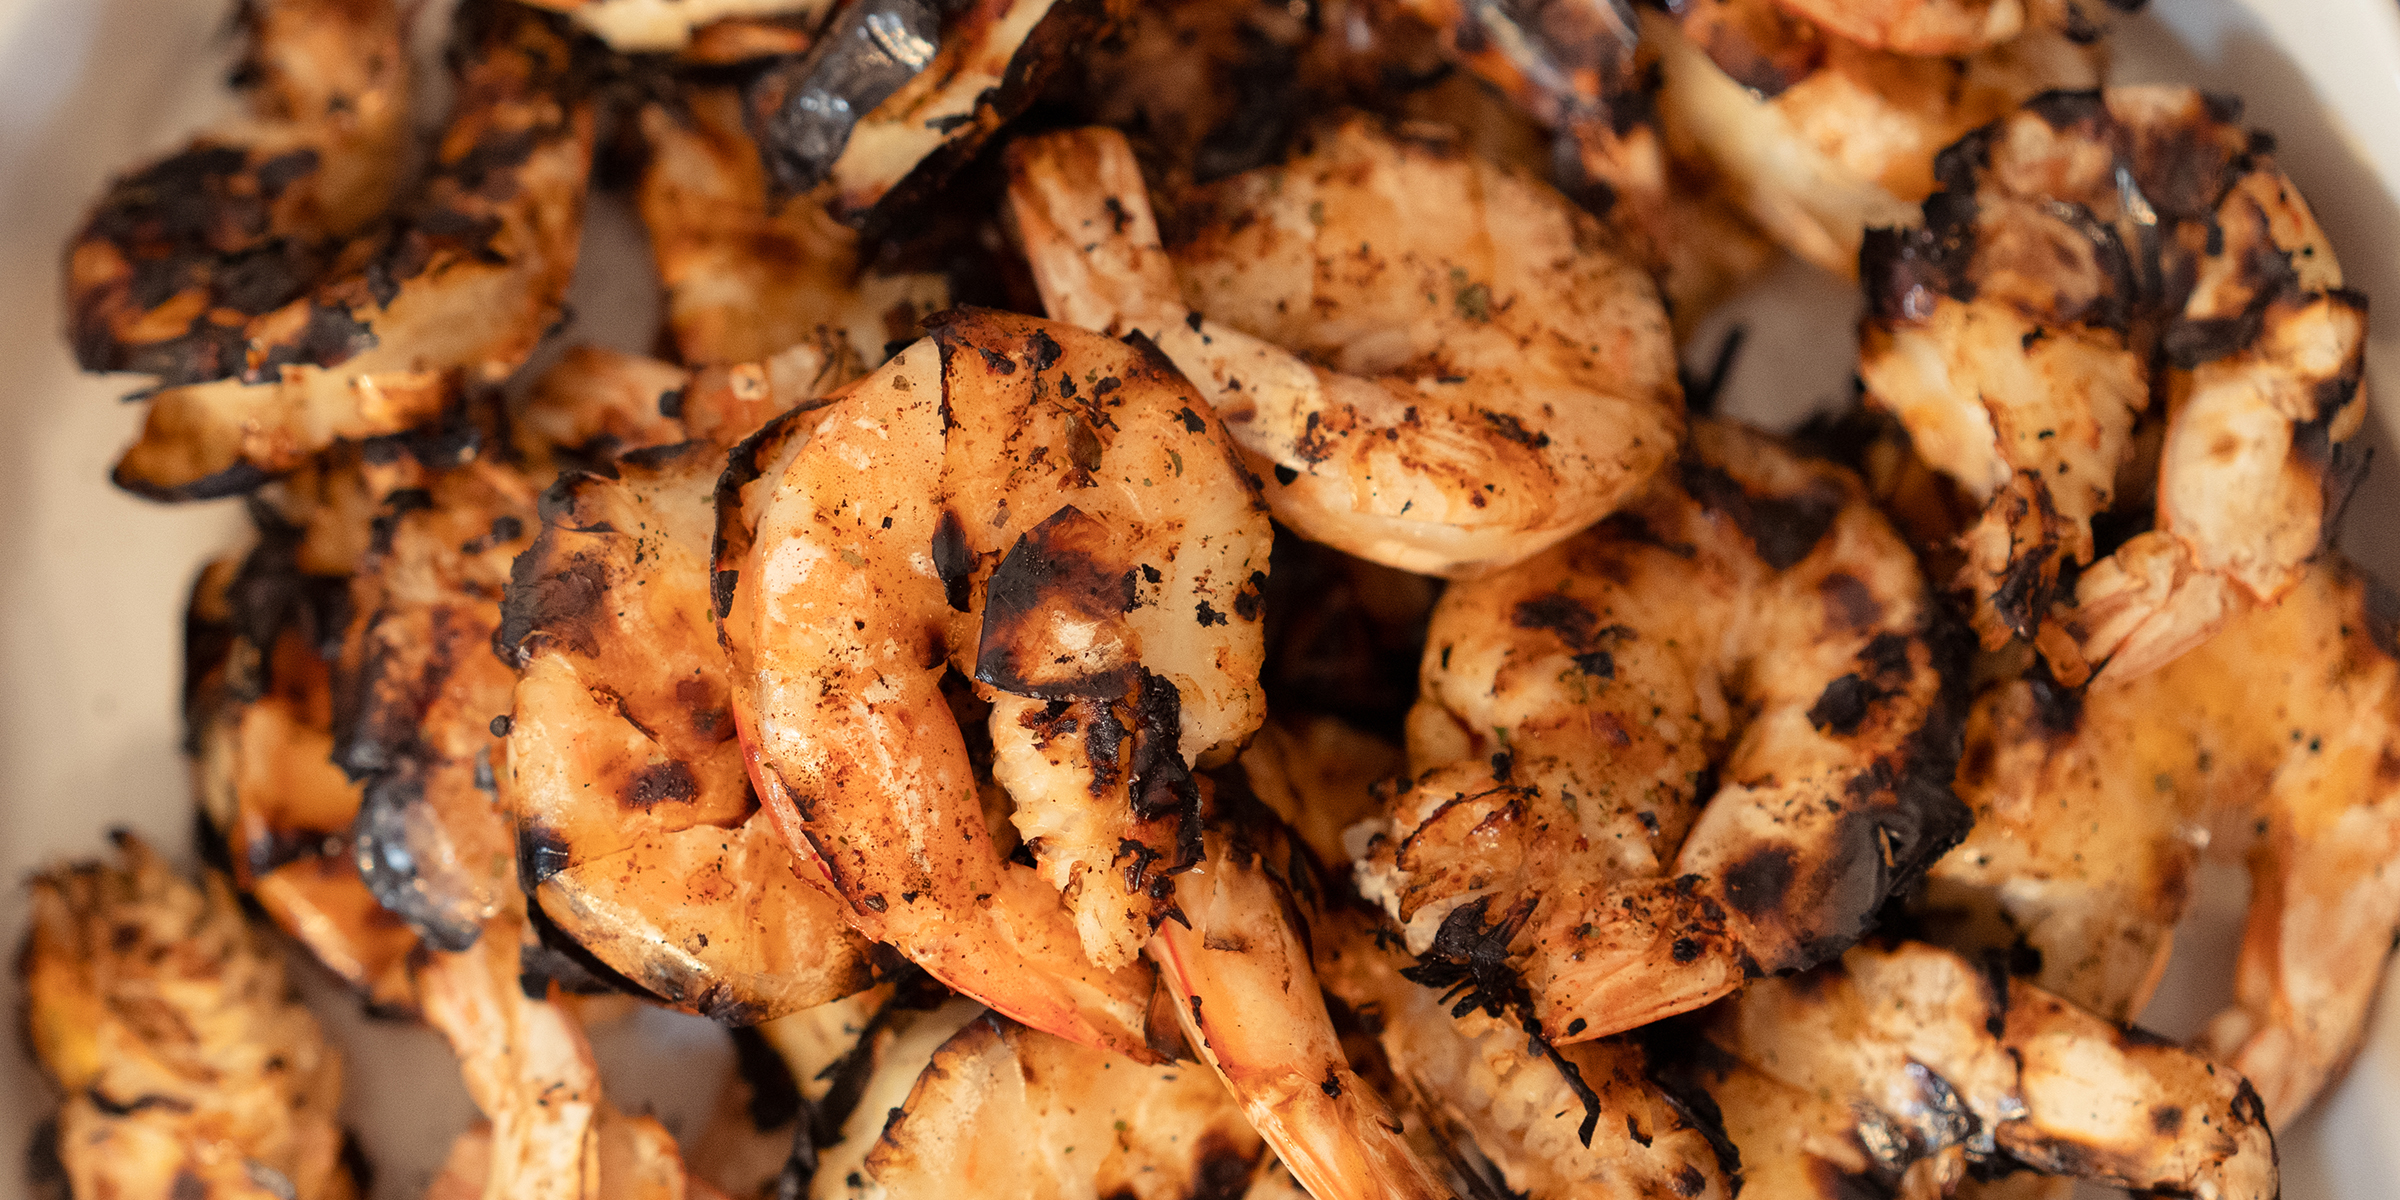 Kick off grilling season with Al Roker's barbecue grilled shrimp